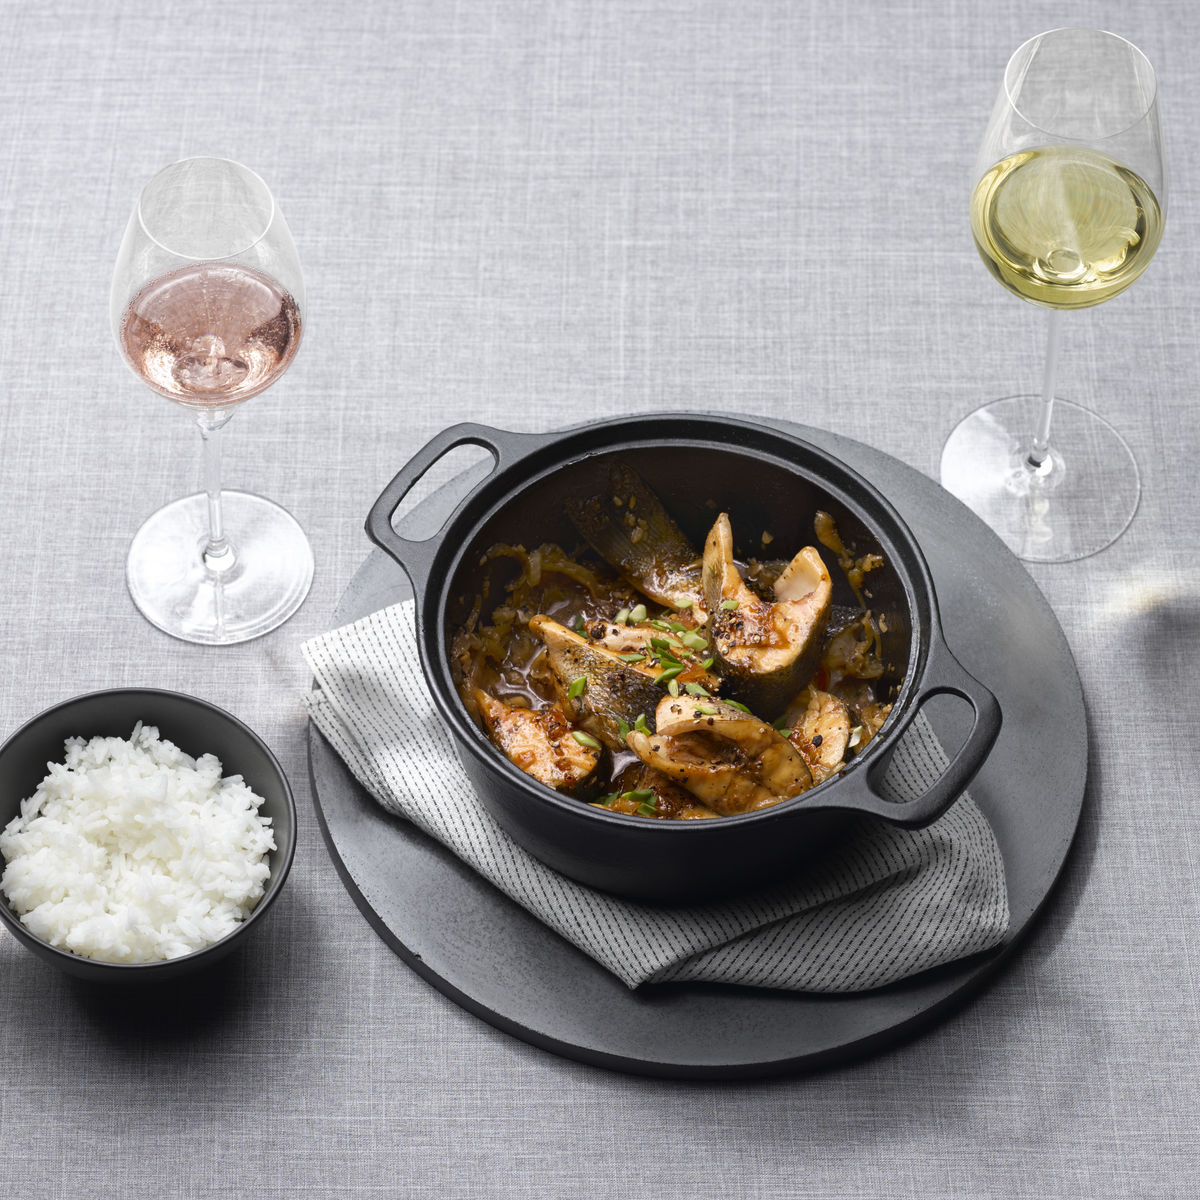 The picture shows the dish Ca Kho To and three glasses, filled with white and rosé wine,